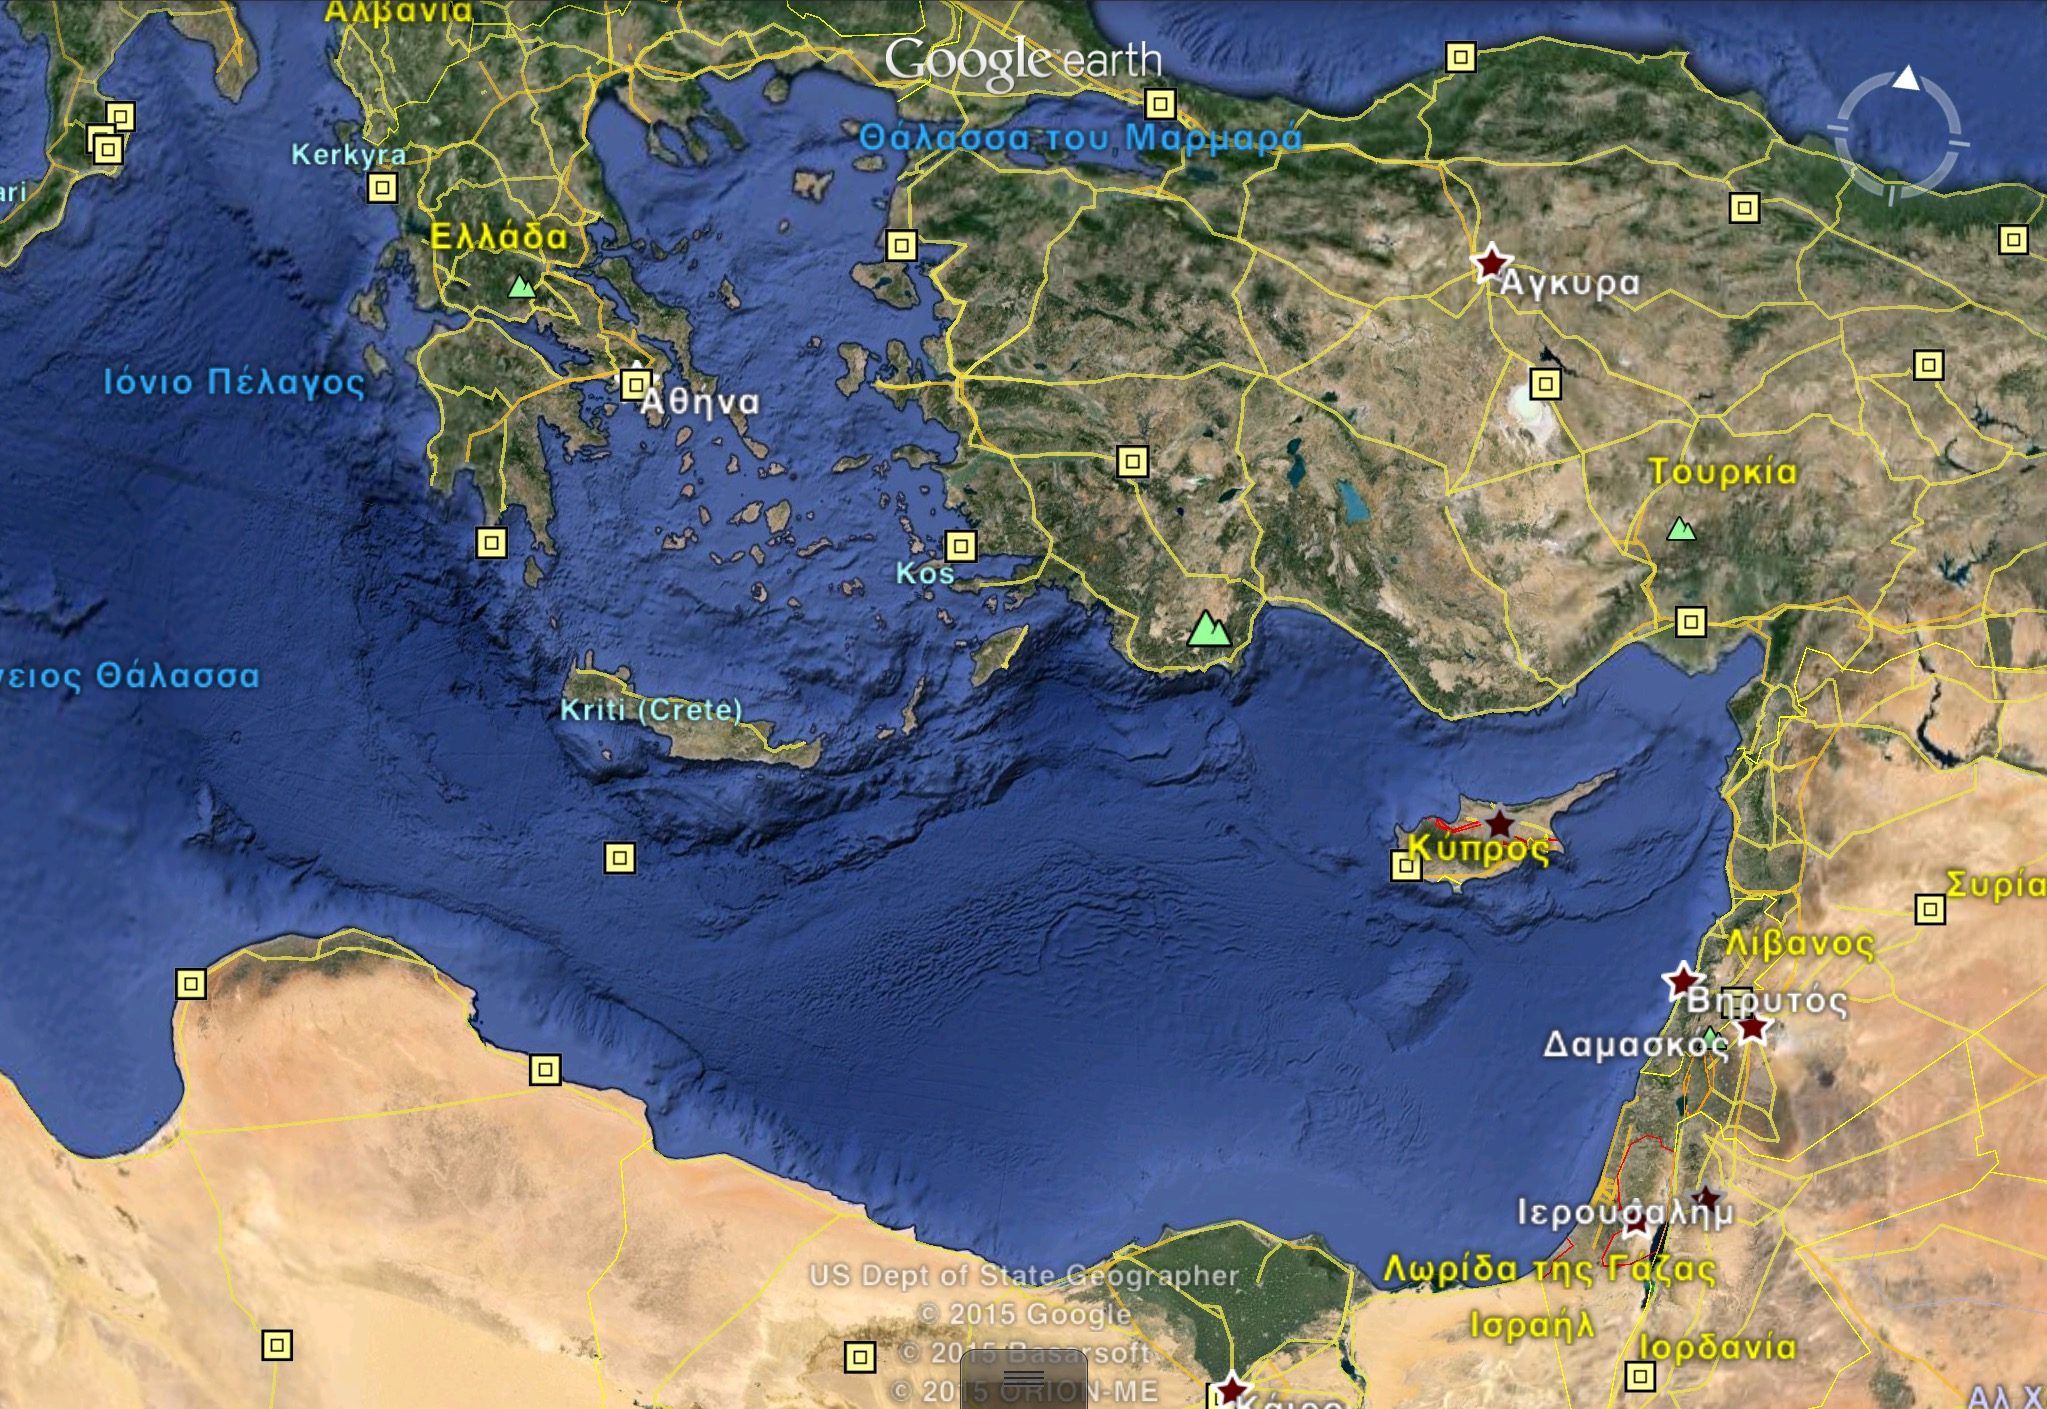 New gas discovery shakes eastern Mediterranean energy landscape once again